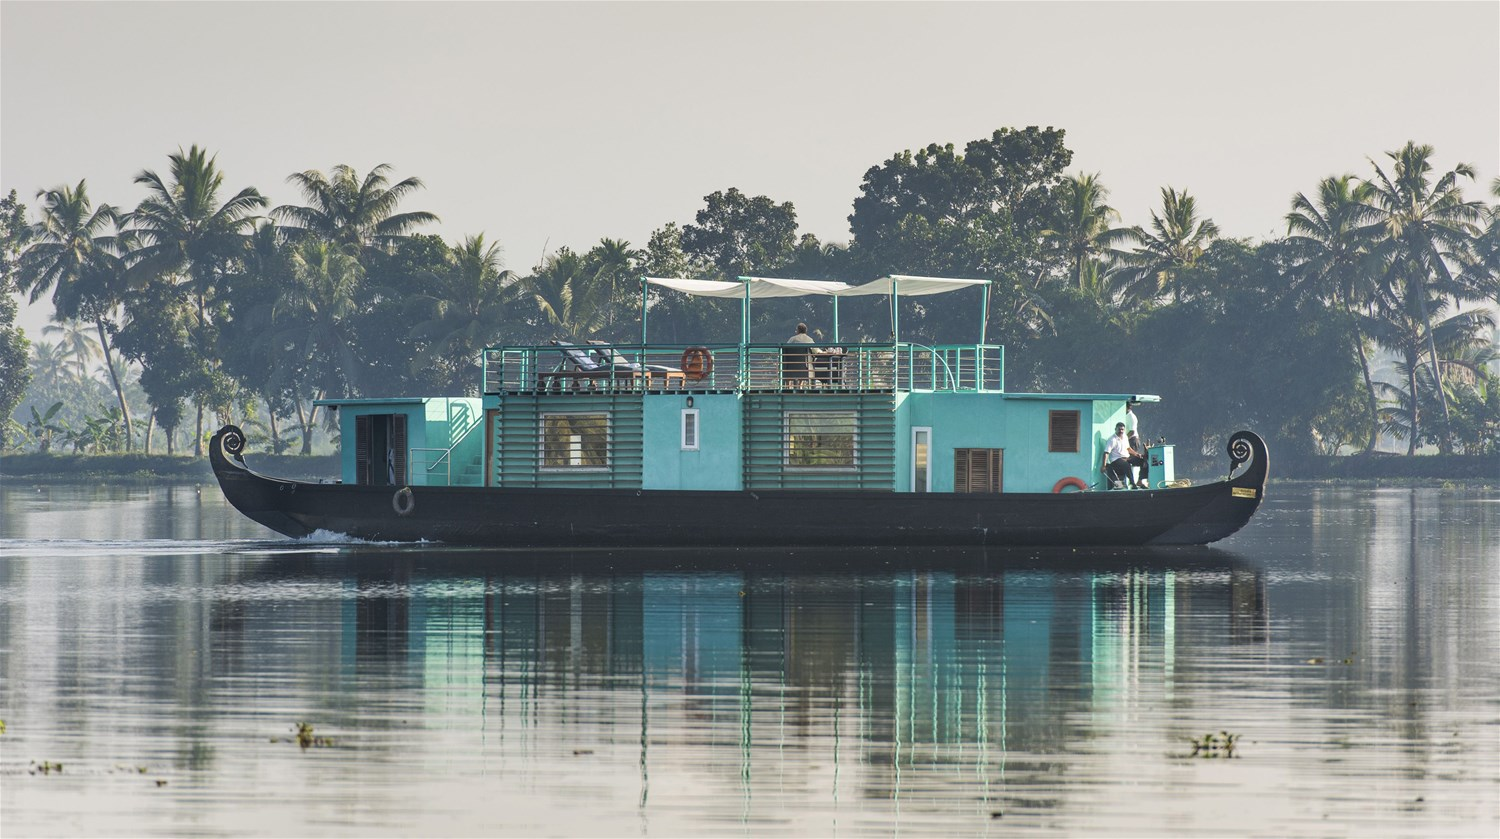 discovery houseboat kerala s backwaters kerala southern india